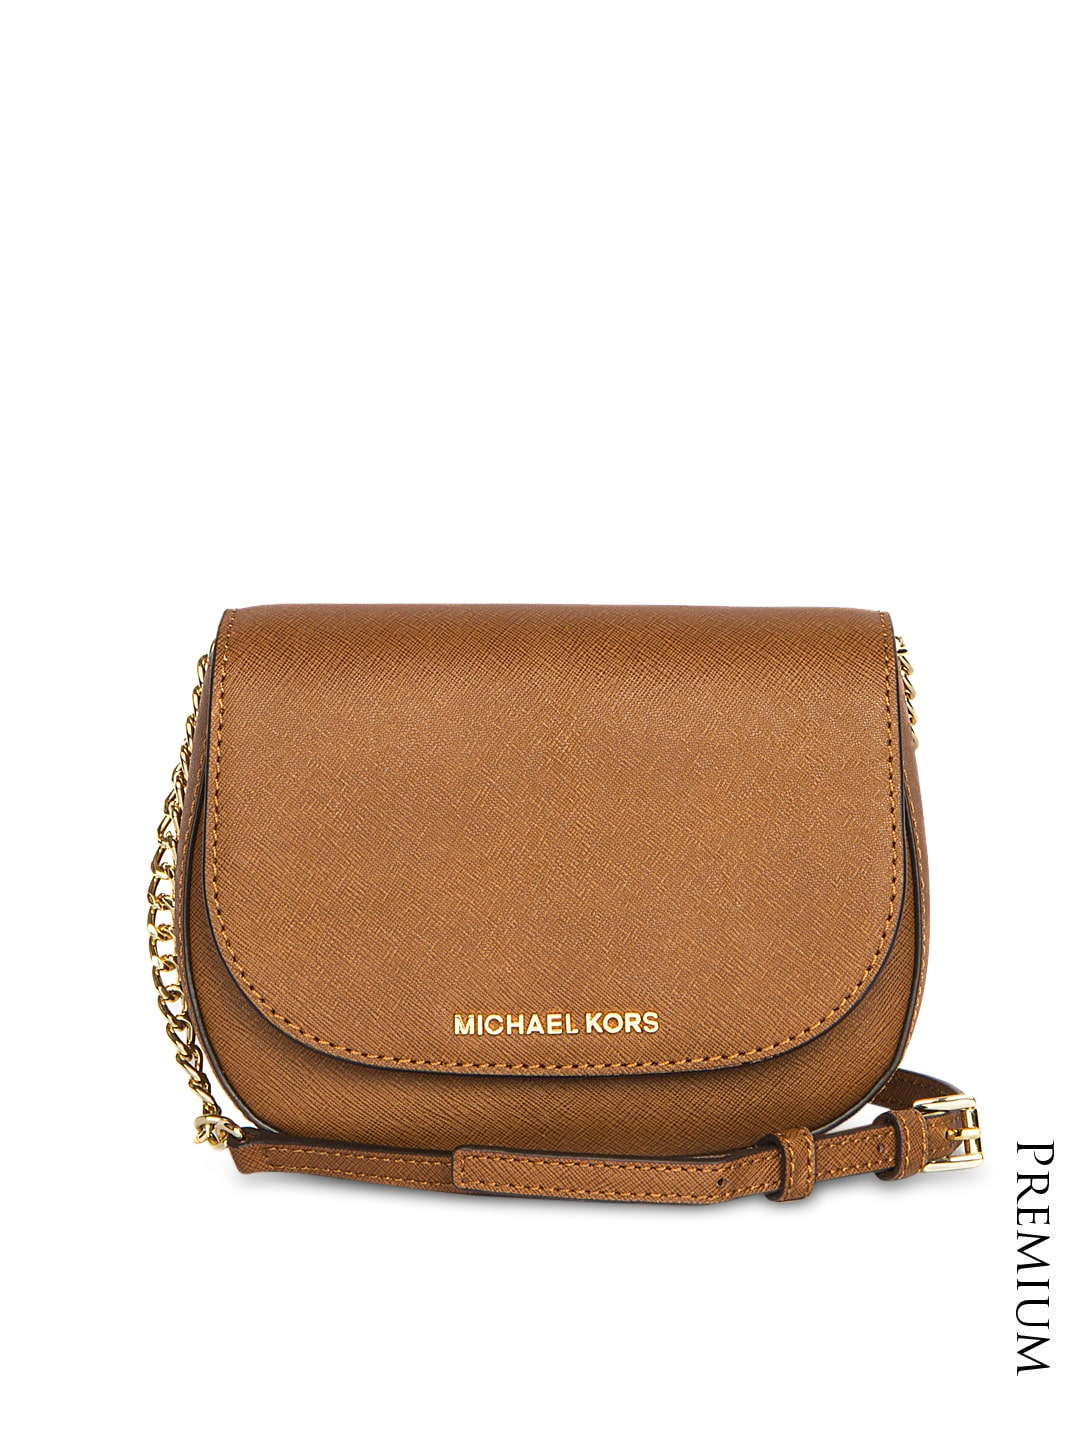 15a9fb04a48acf Buy michael kors bags india > OFF69% Discounted